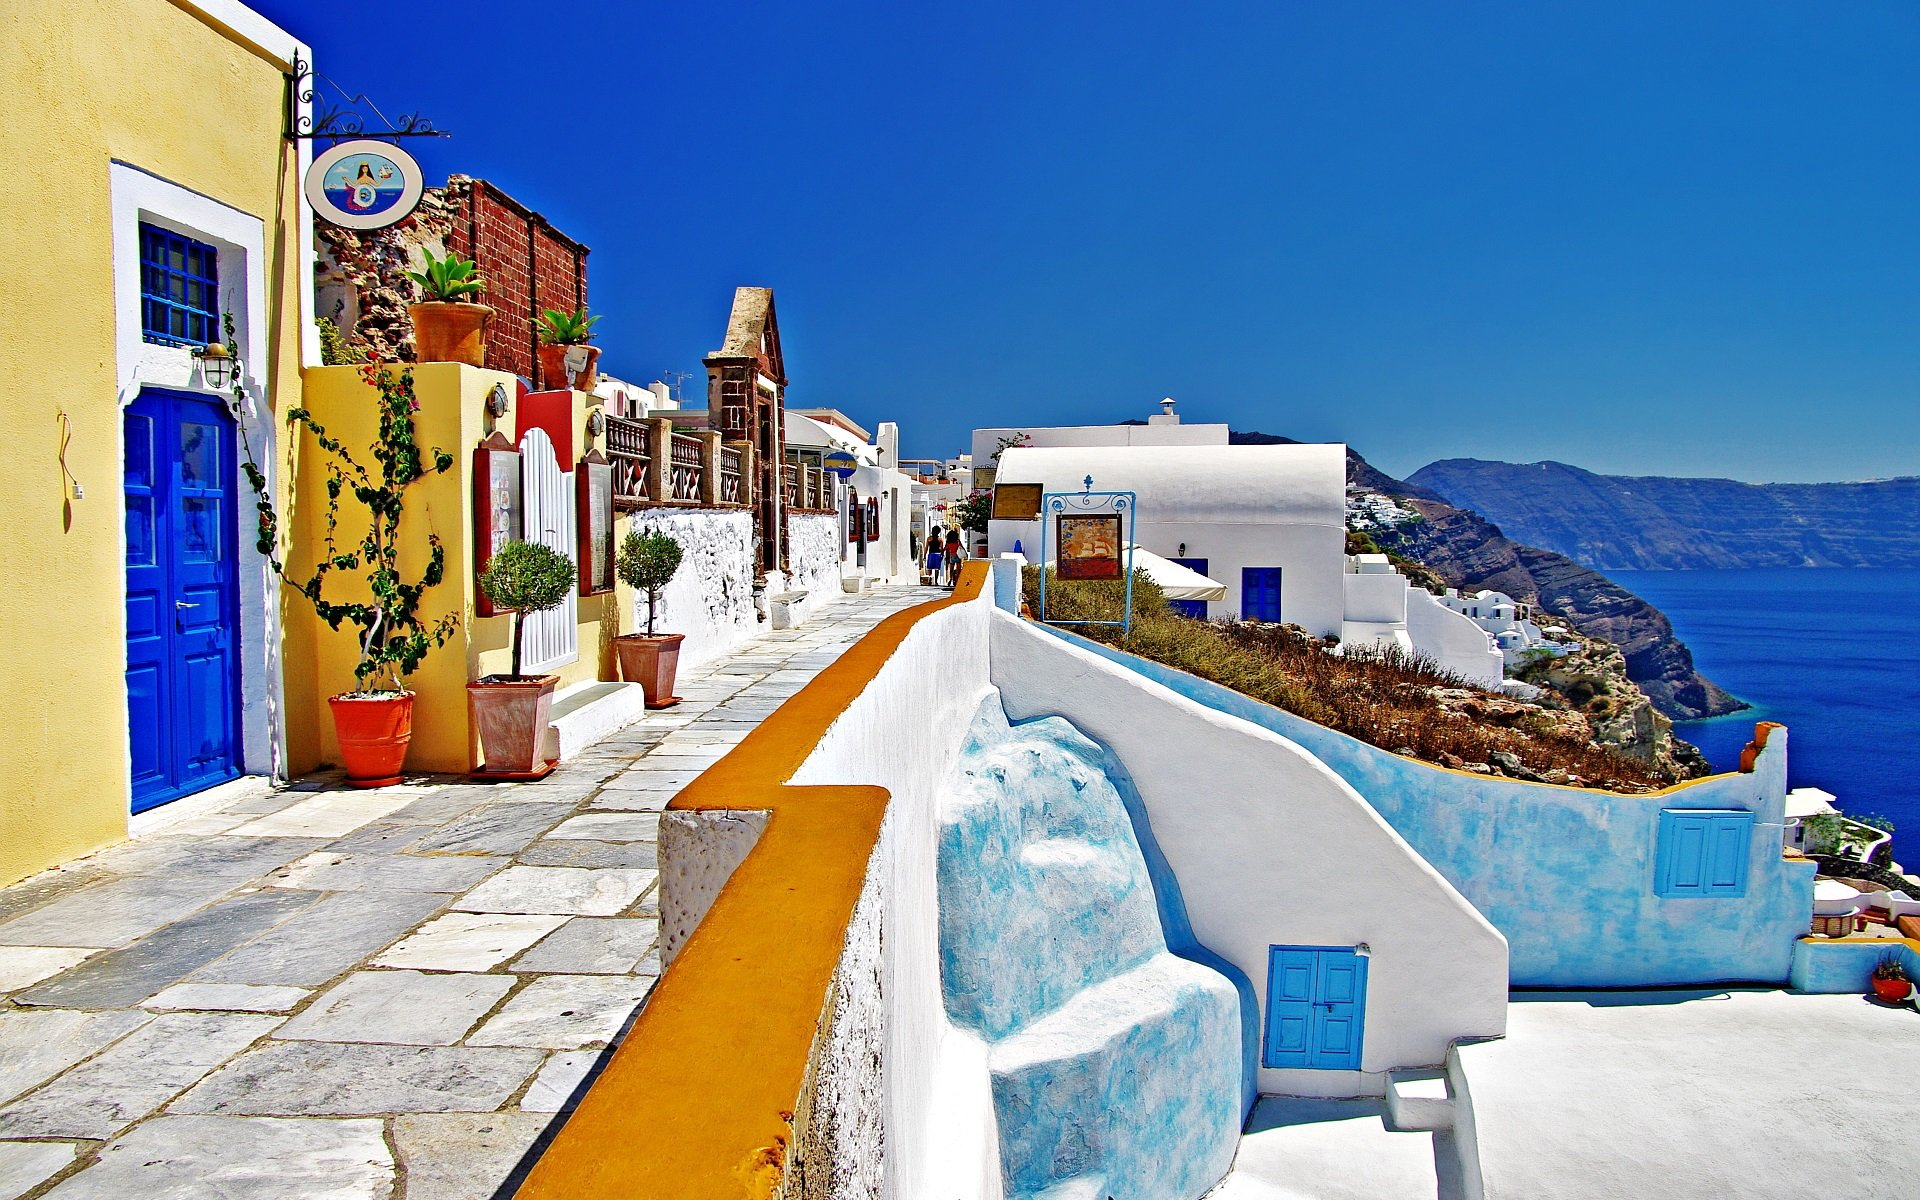 Wallpaper Santorini Greece street houses white style 1920x1200 1920x1200